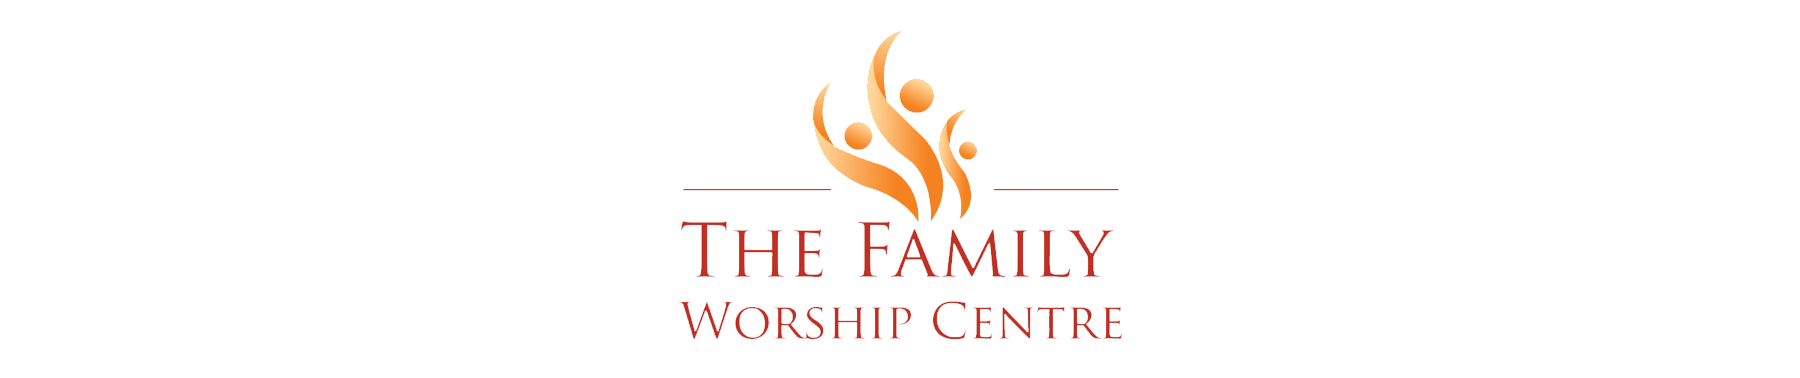 The Family Worship Center | Home - 69.6KB